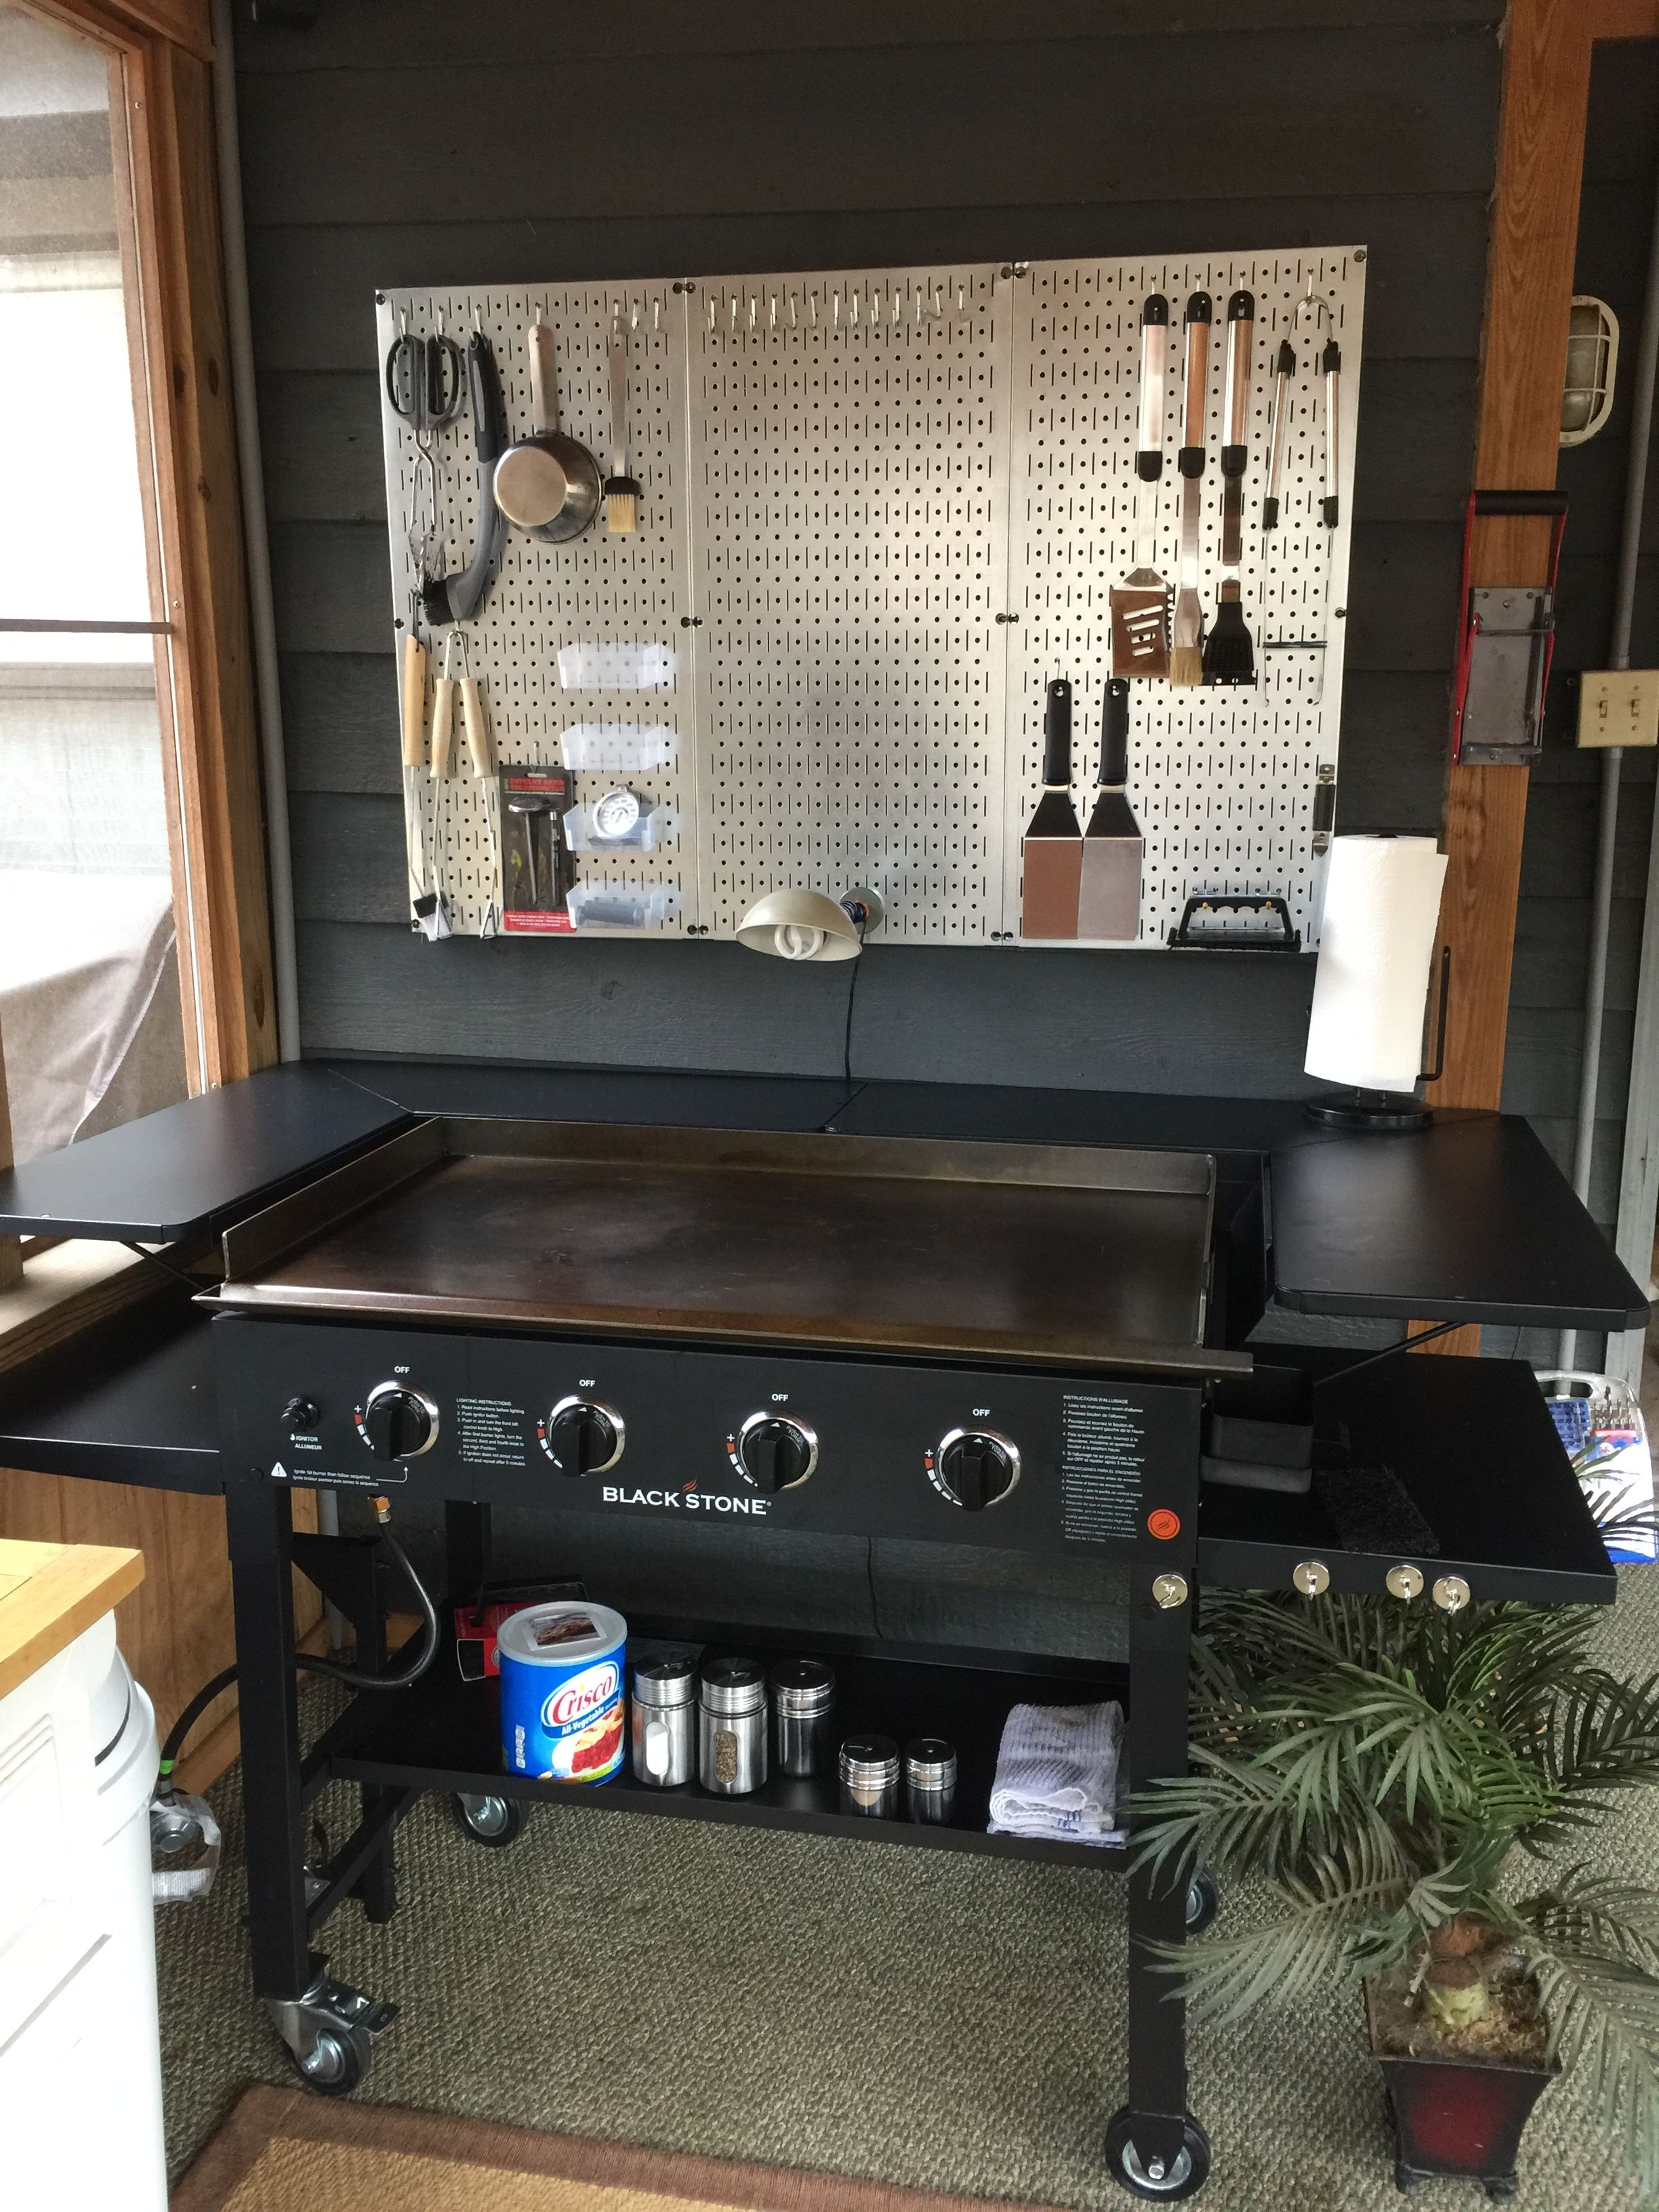 outdoor kitchen griddle pfister faucet parts adf26427f20d5913d640383e5ad459a2 jpg 24483264 outside